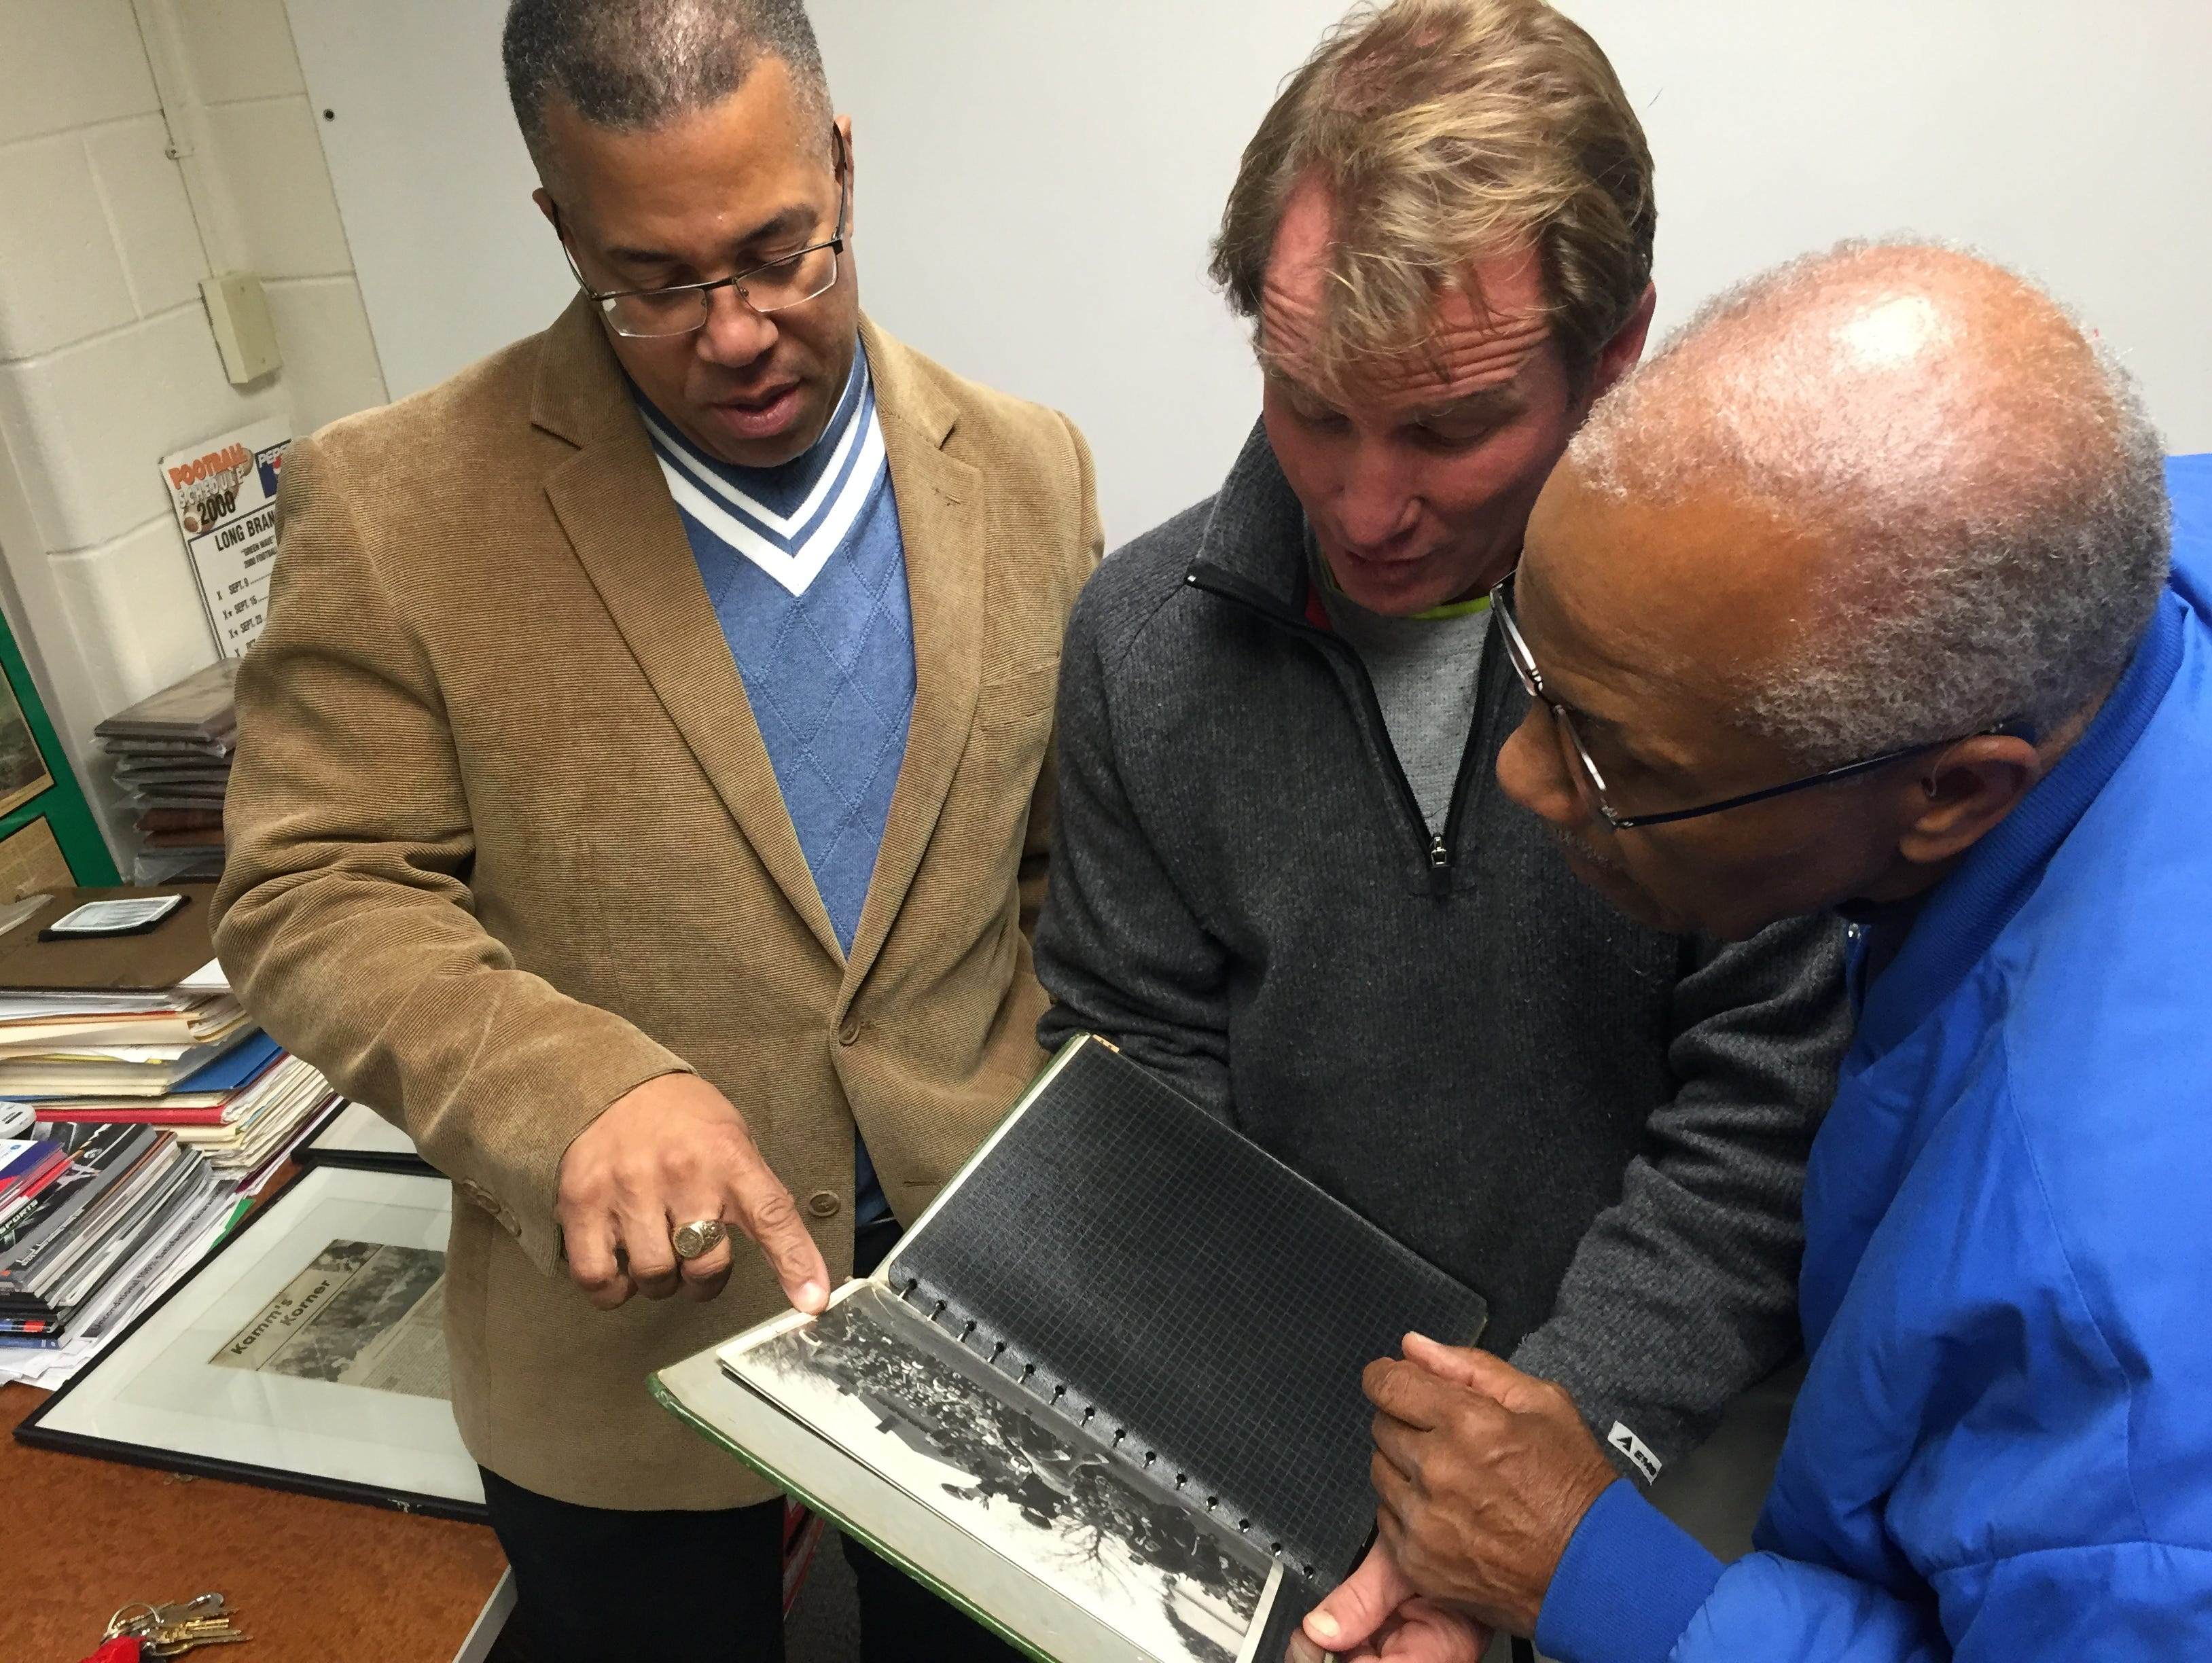 Looking at a scrapbook of the 1957 Long Branch football season are (left to right) Wesley Mayo Jr., current Long Branch head coach Dan George, and Wesley Mayo Sr., who played on the 1957 team with George's father, William George Jr.